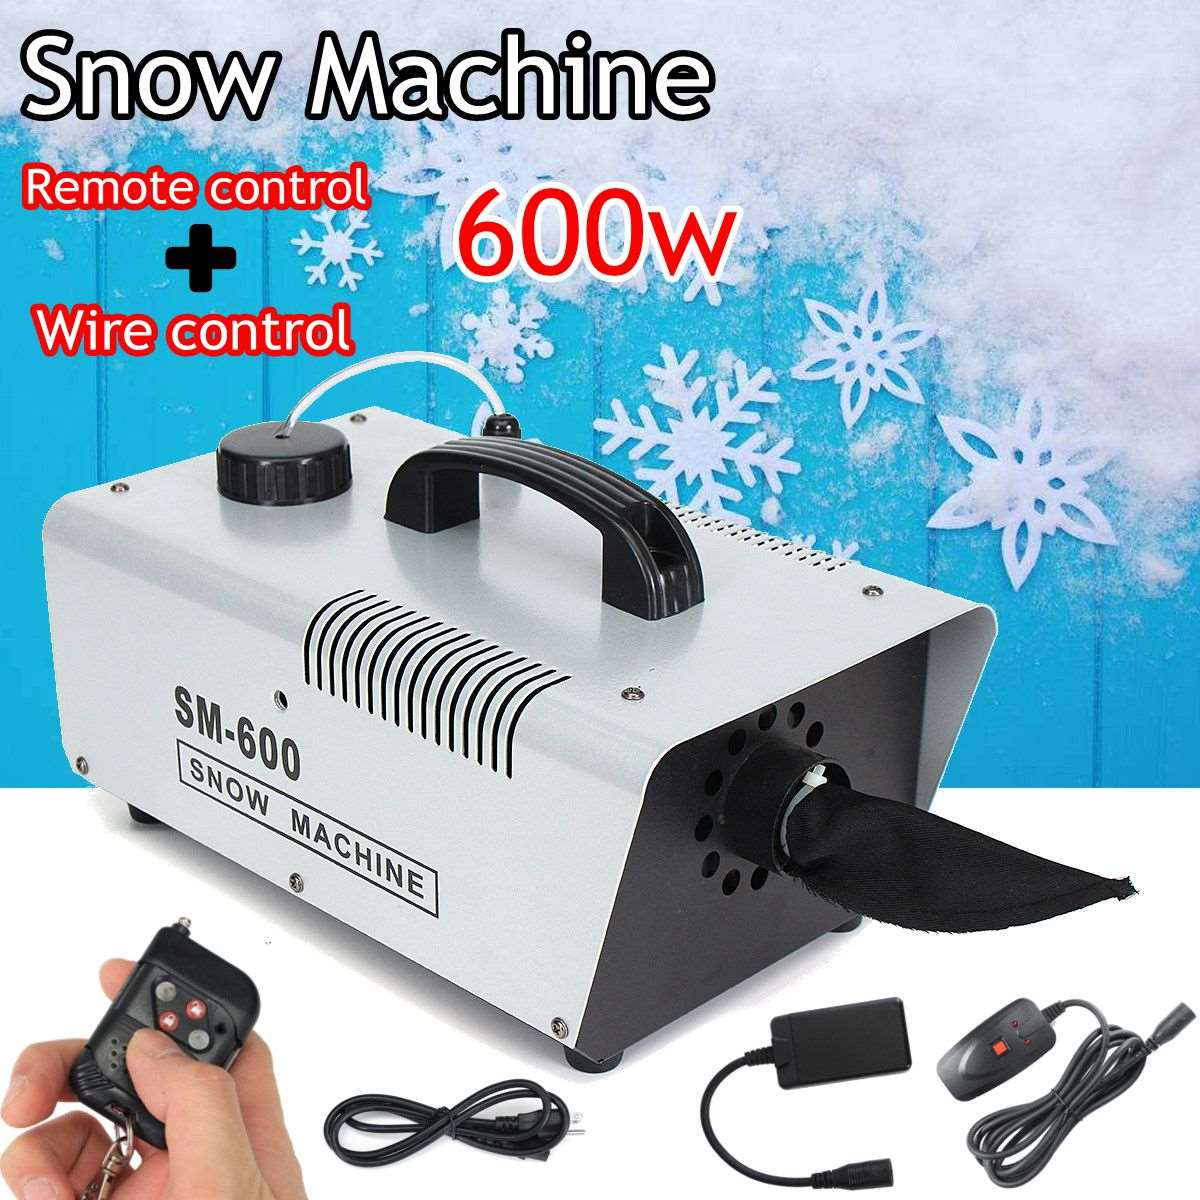 110V/220V 600W Mini Flurry Snow Machine Stage Effect + Wired Remote for Holiday Stage Snowmaker Spray Snow Soap Foam Machine ранец step by step baggymax speedy pink star розовый 16 л 138533